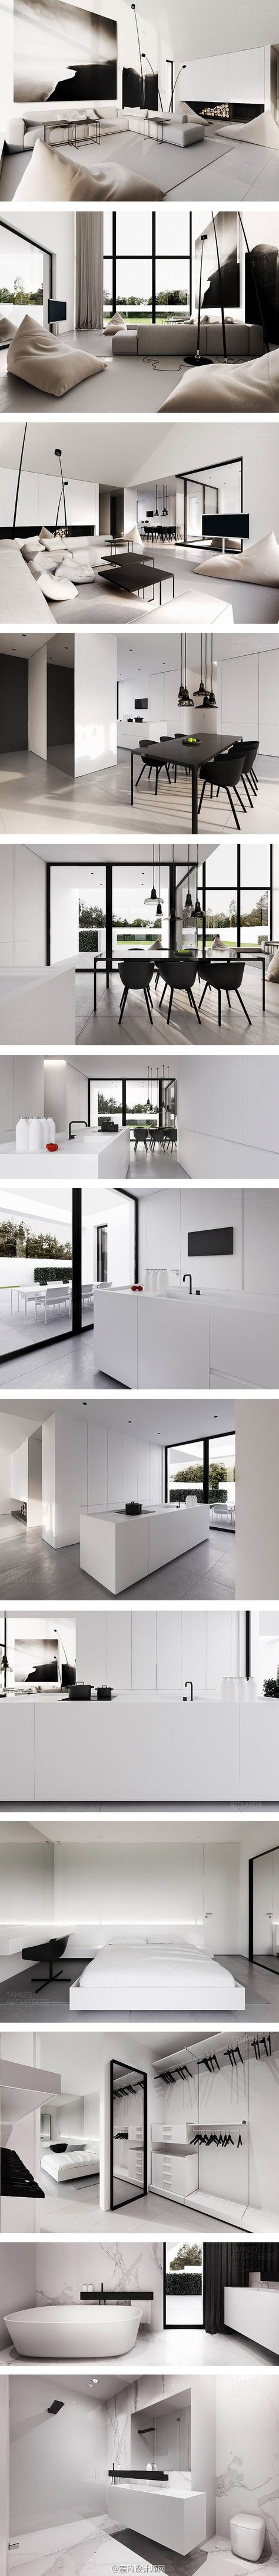 337 best Couch images on Pinterest | Architecture, Contemporary ...